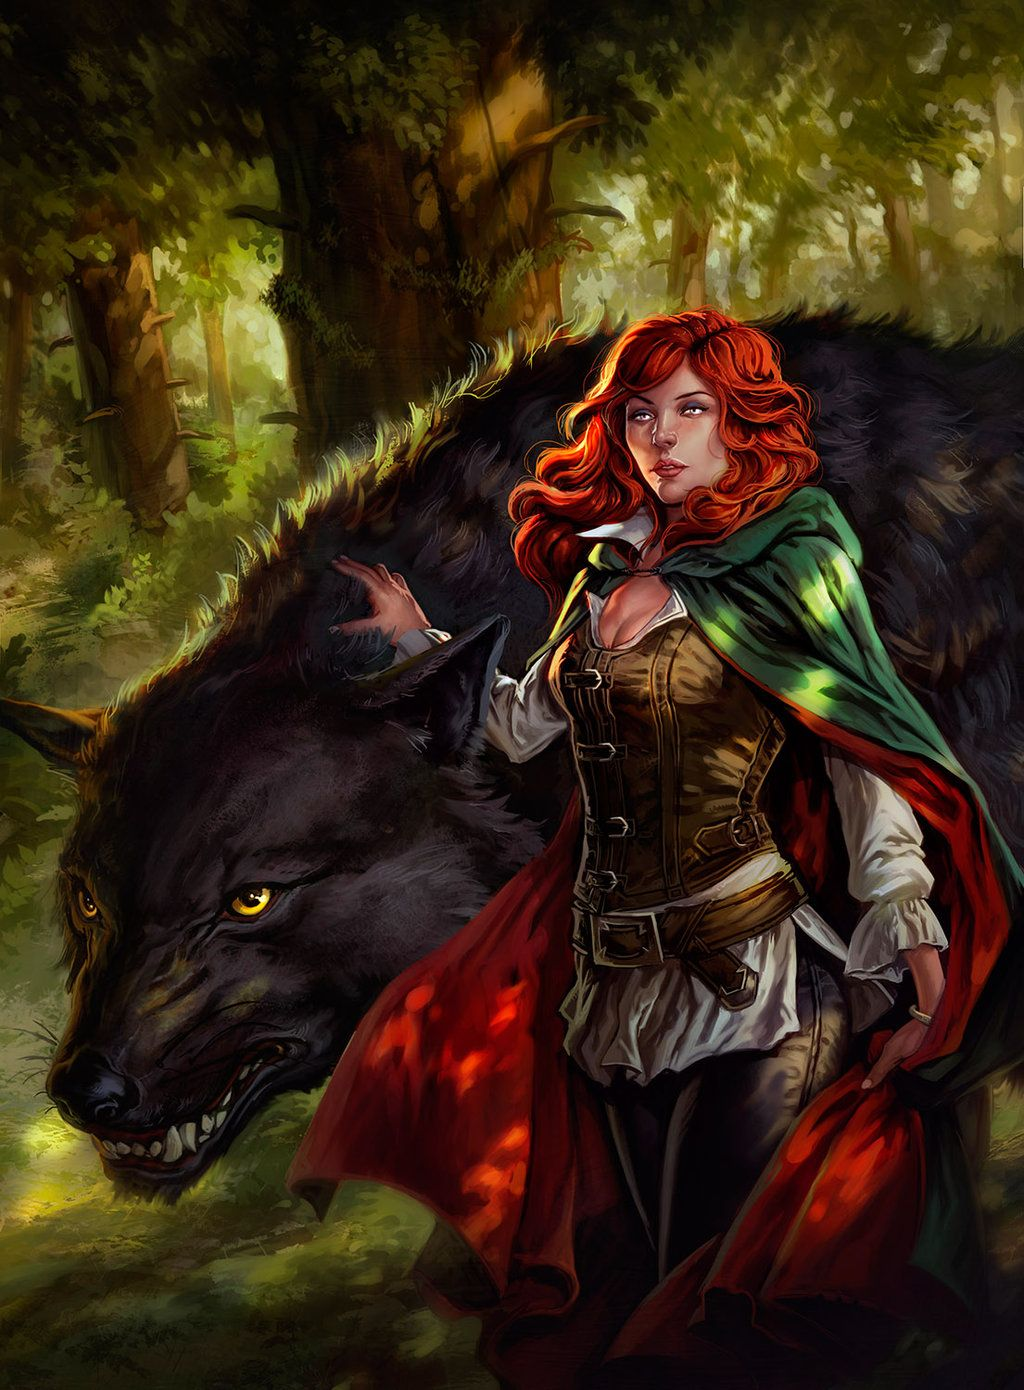 The Great Hunt - 2 by dleoblack redhead female druid ranger dire wolf worg companion pet familiar monster red hair armor clothes clothing fashion player character npc | Create your own roleplaying game material w/ RPG Bard: www.rpgbard.com | Writing inspiration for Dungeons and Dragons DND D&D Pathfinder PFRPG Warhammer 40k Star Wars Shadowrun Call of Cthulhu Lord of the Rings LoTR + d20 fantasy science fiction scifi horror design | Not Trusty Sword art: click artwork for source